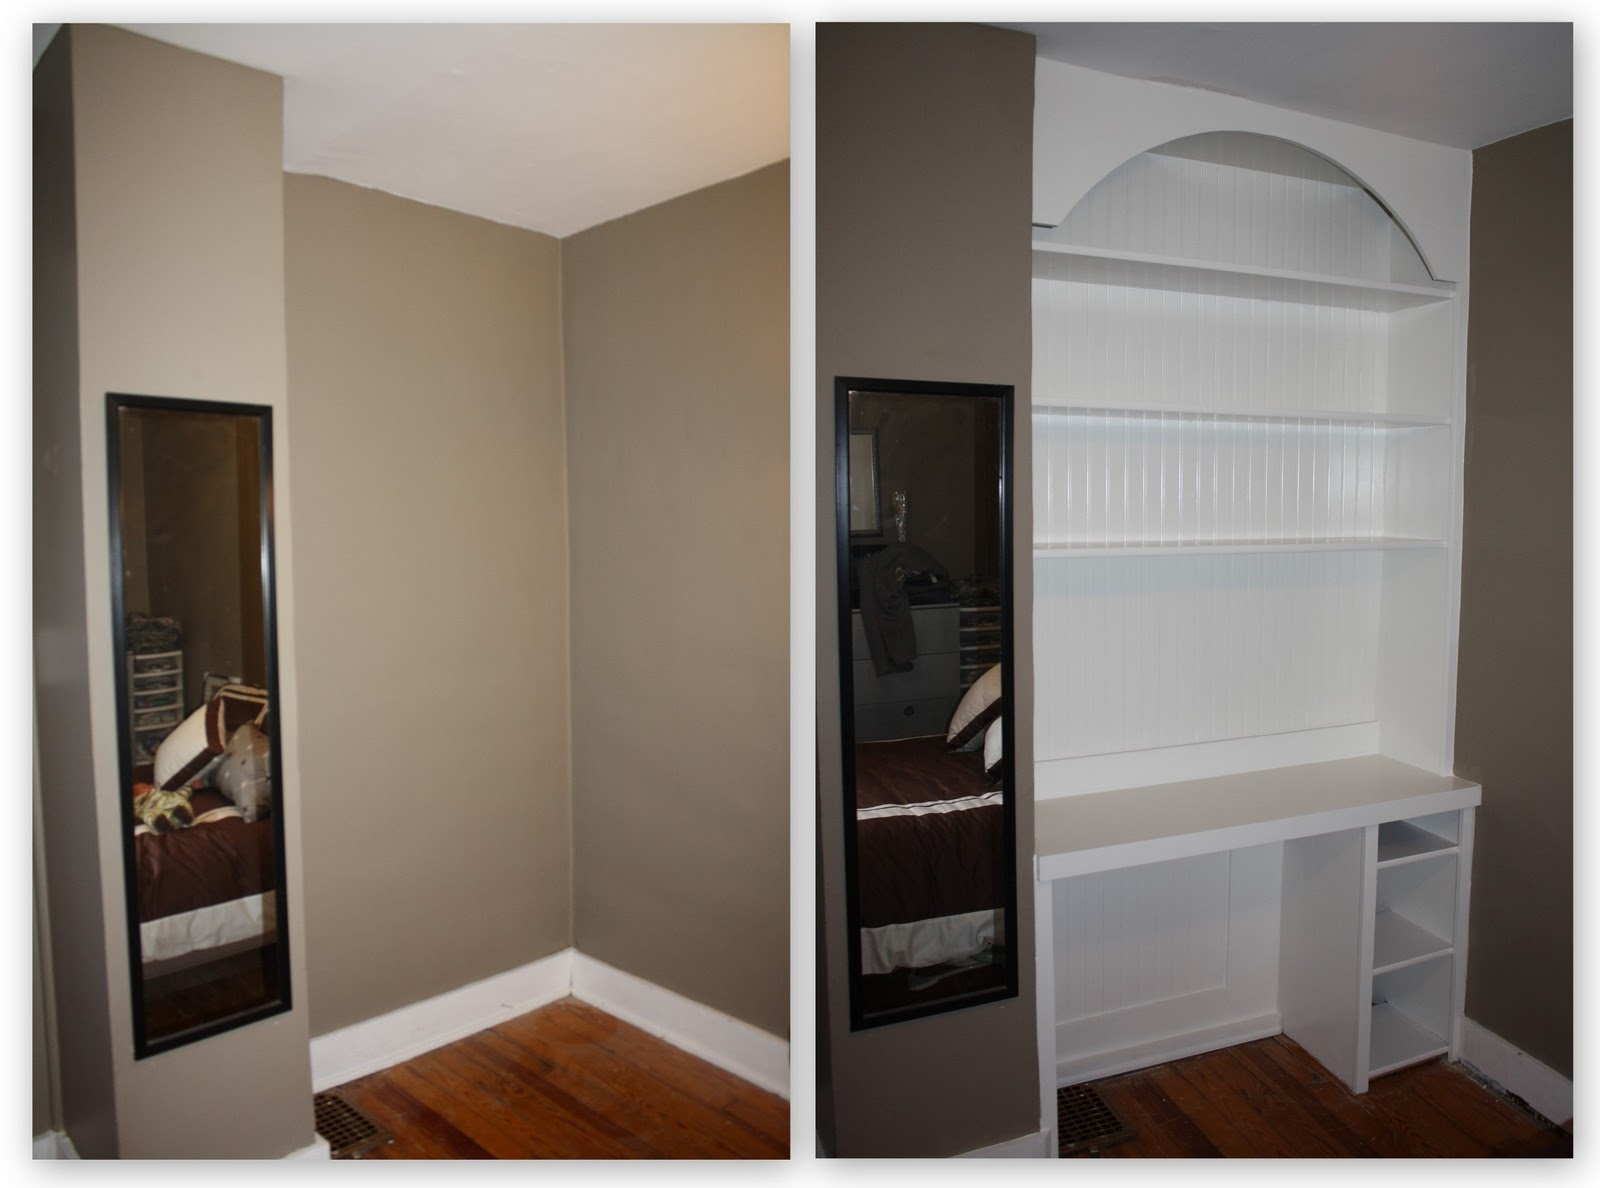 Do It Yourself Home Design: House On Tufton: DIY Project: Build Custom Built-in Desk